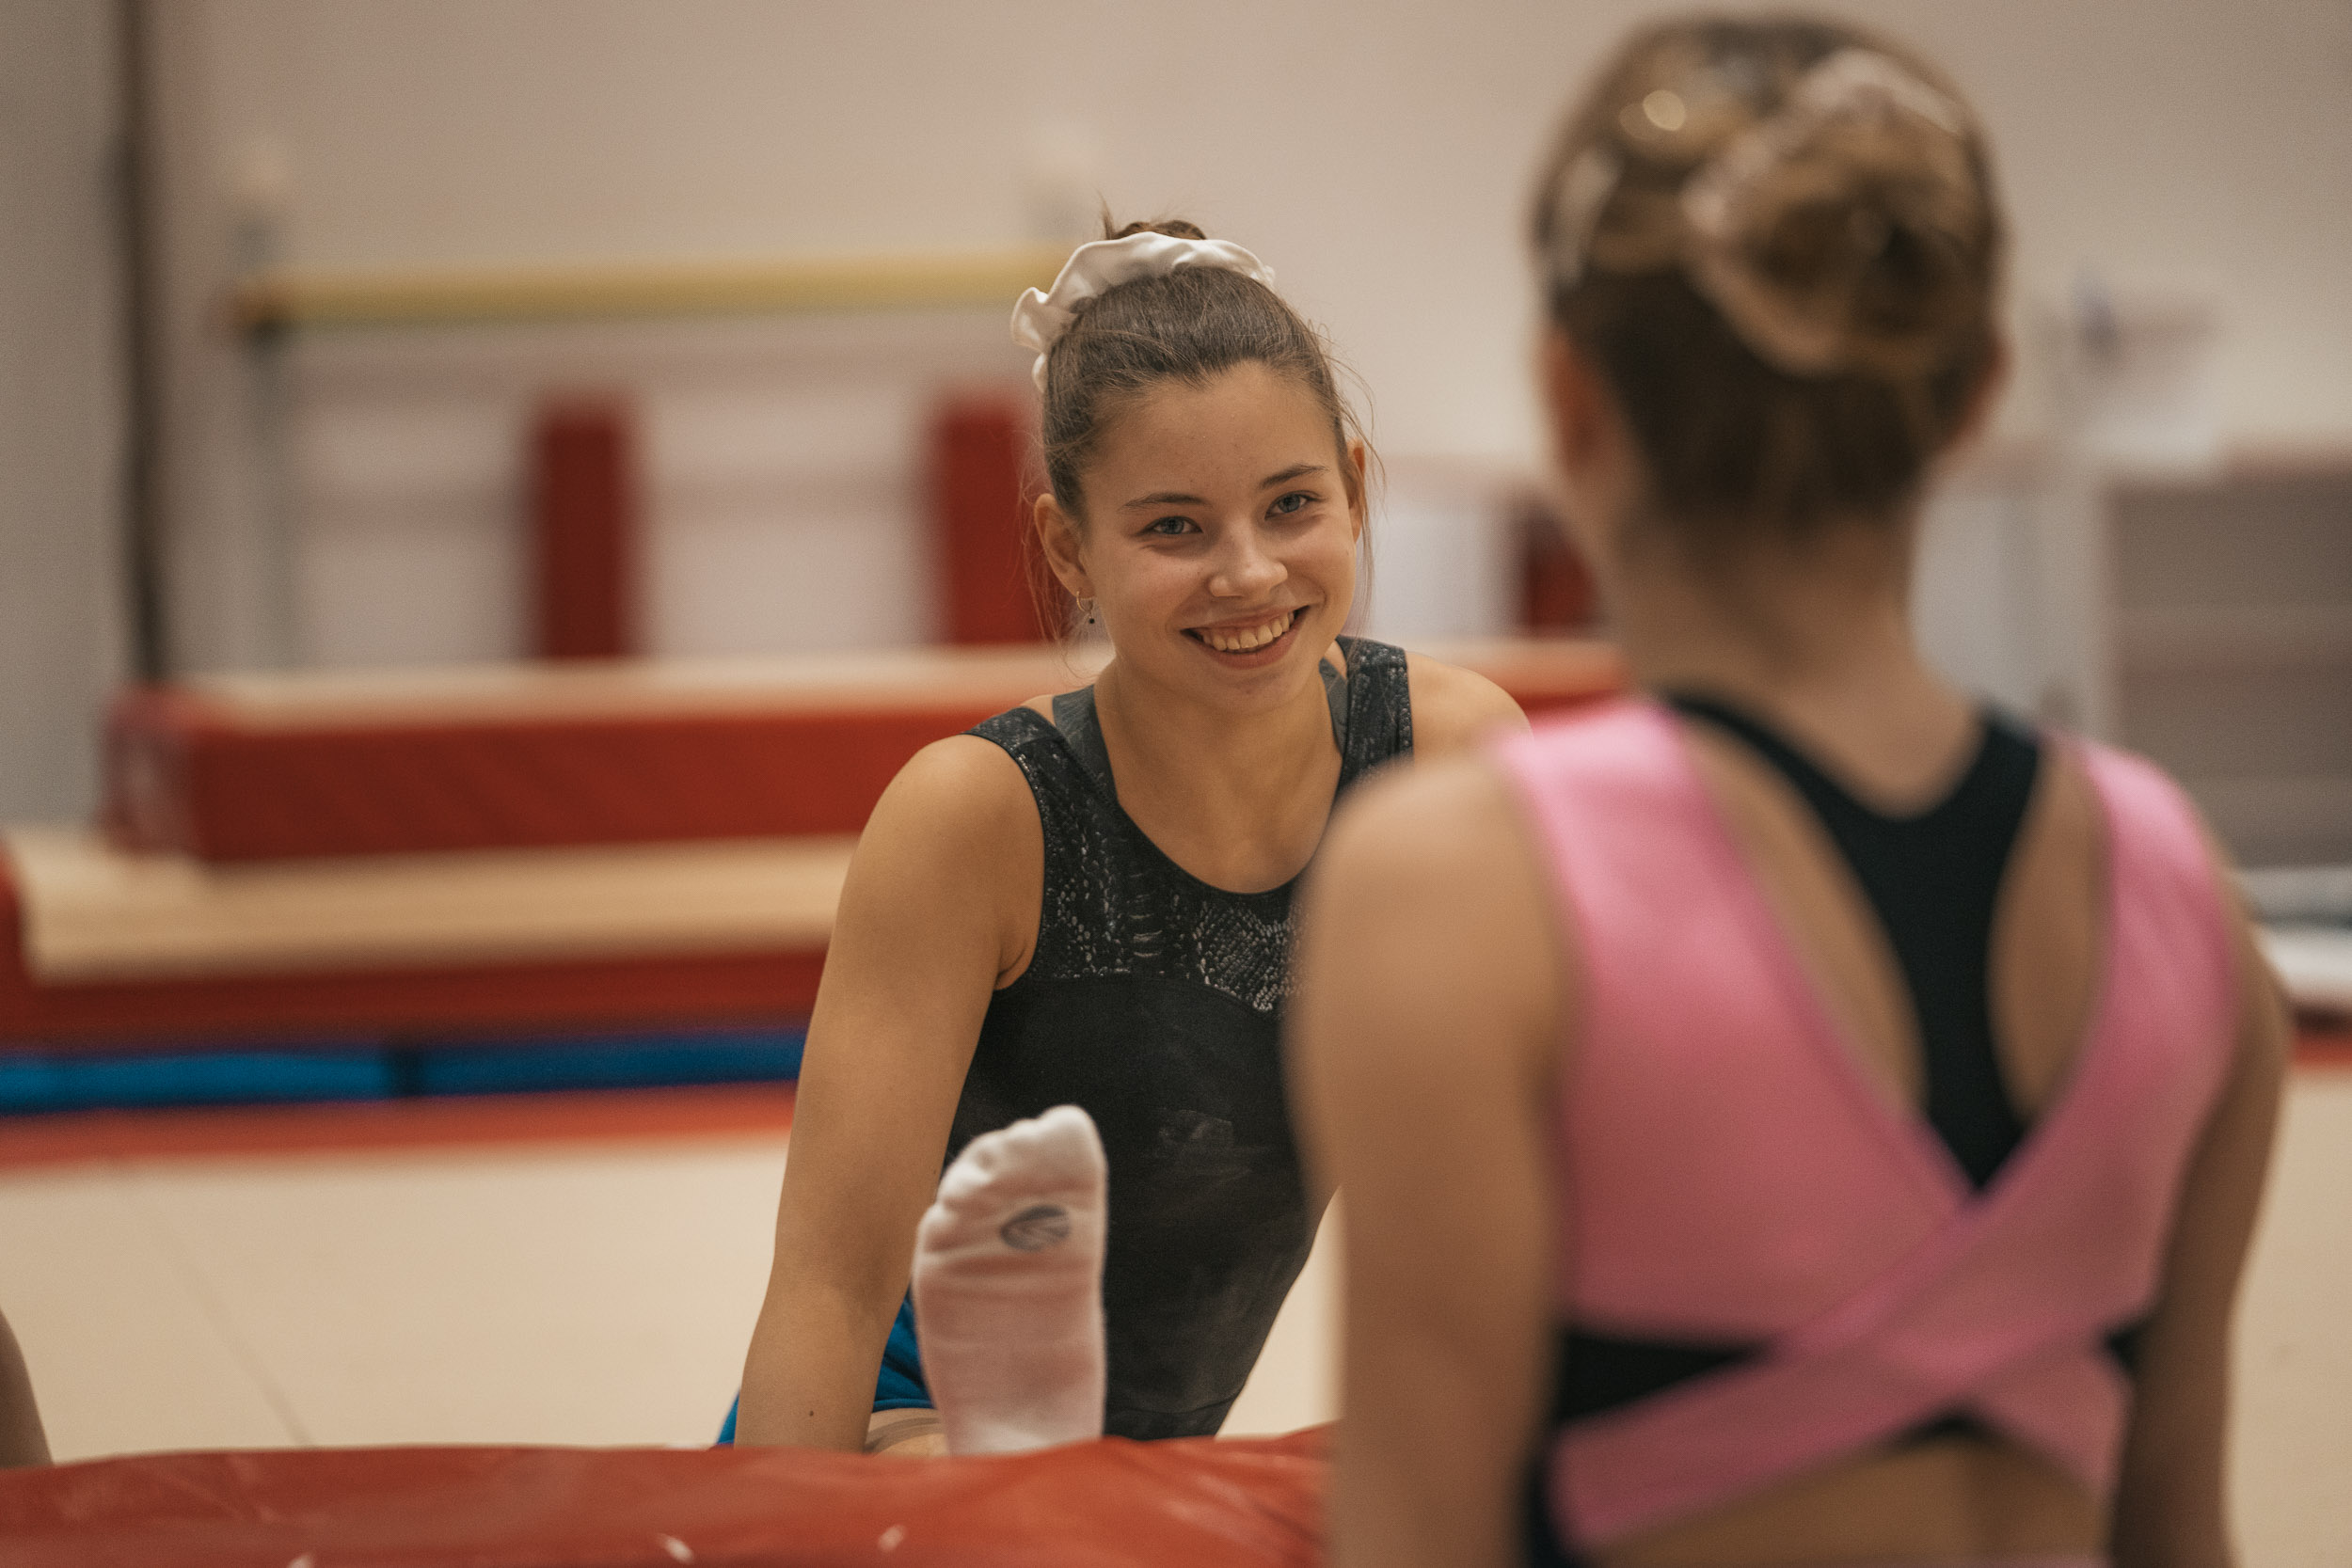 A gymnast smiling and stretching